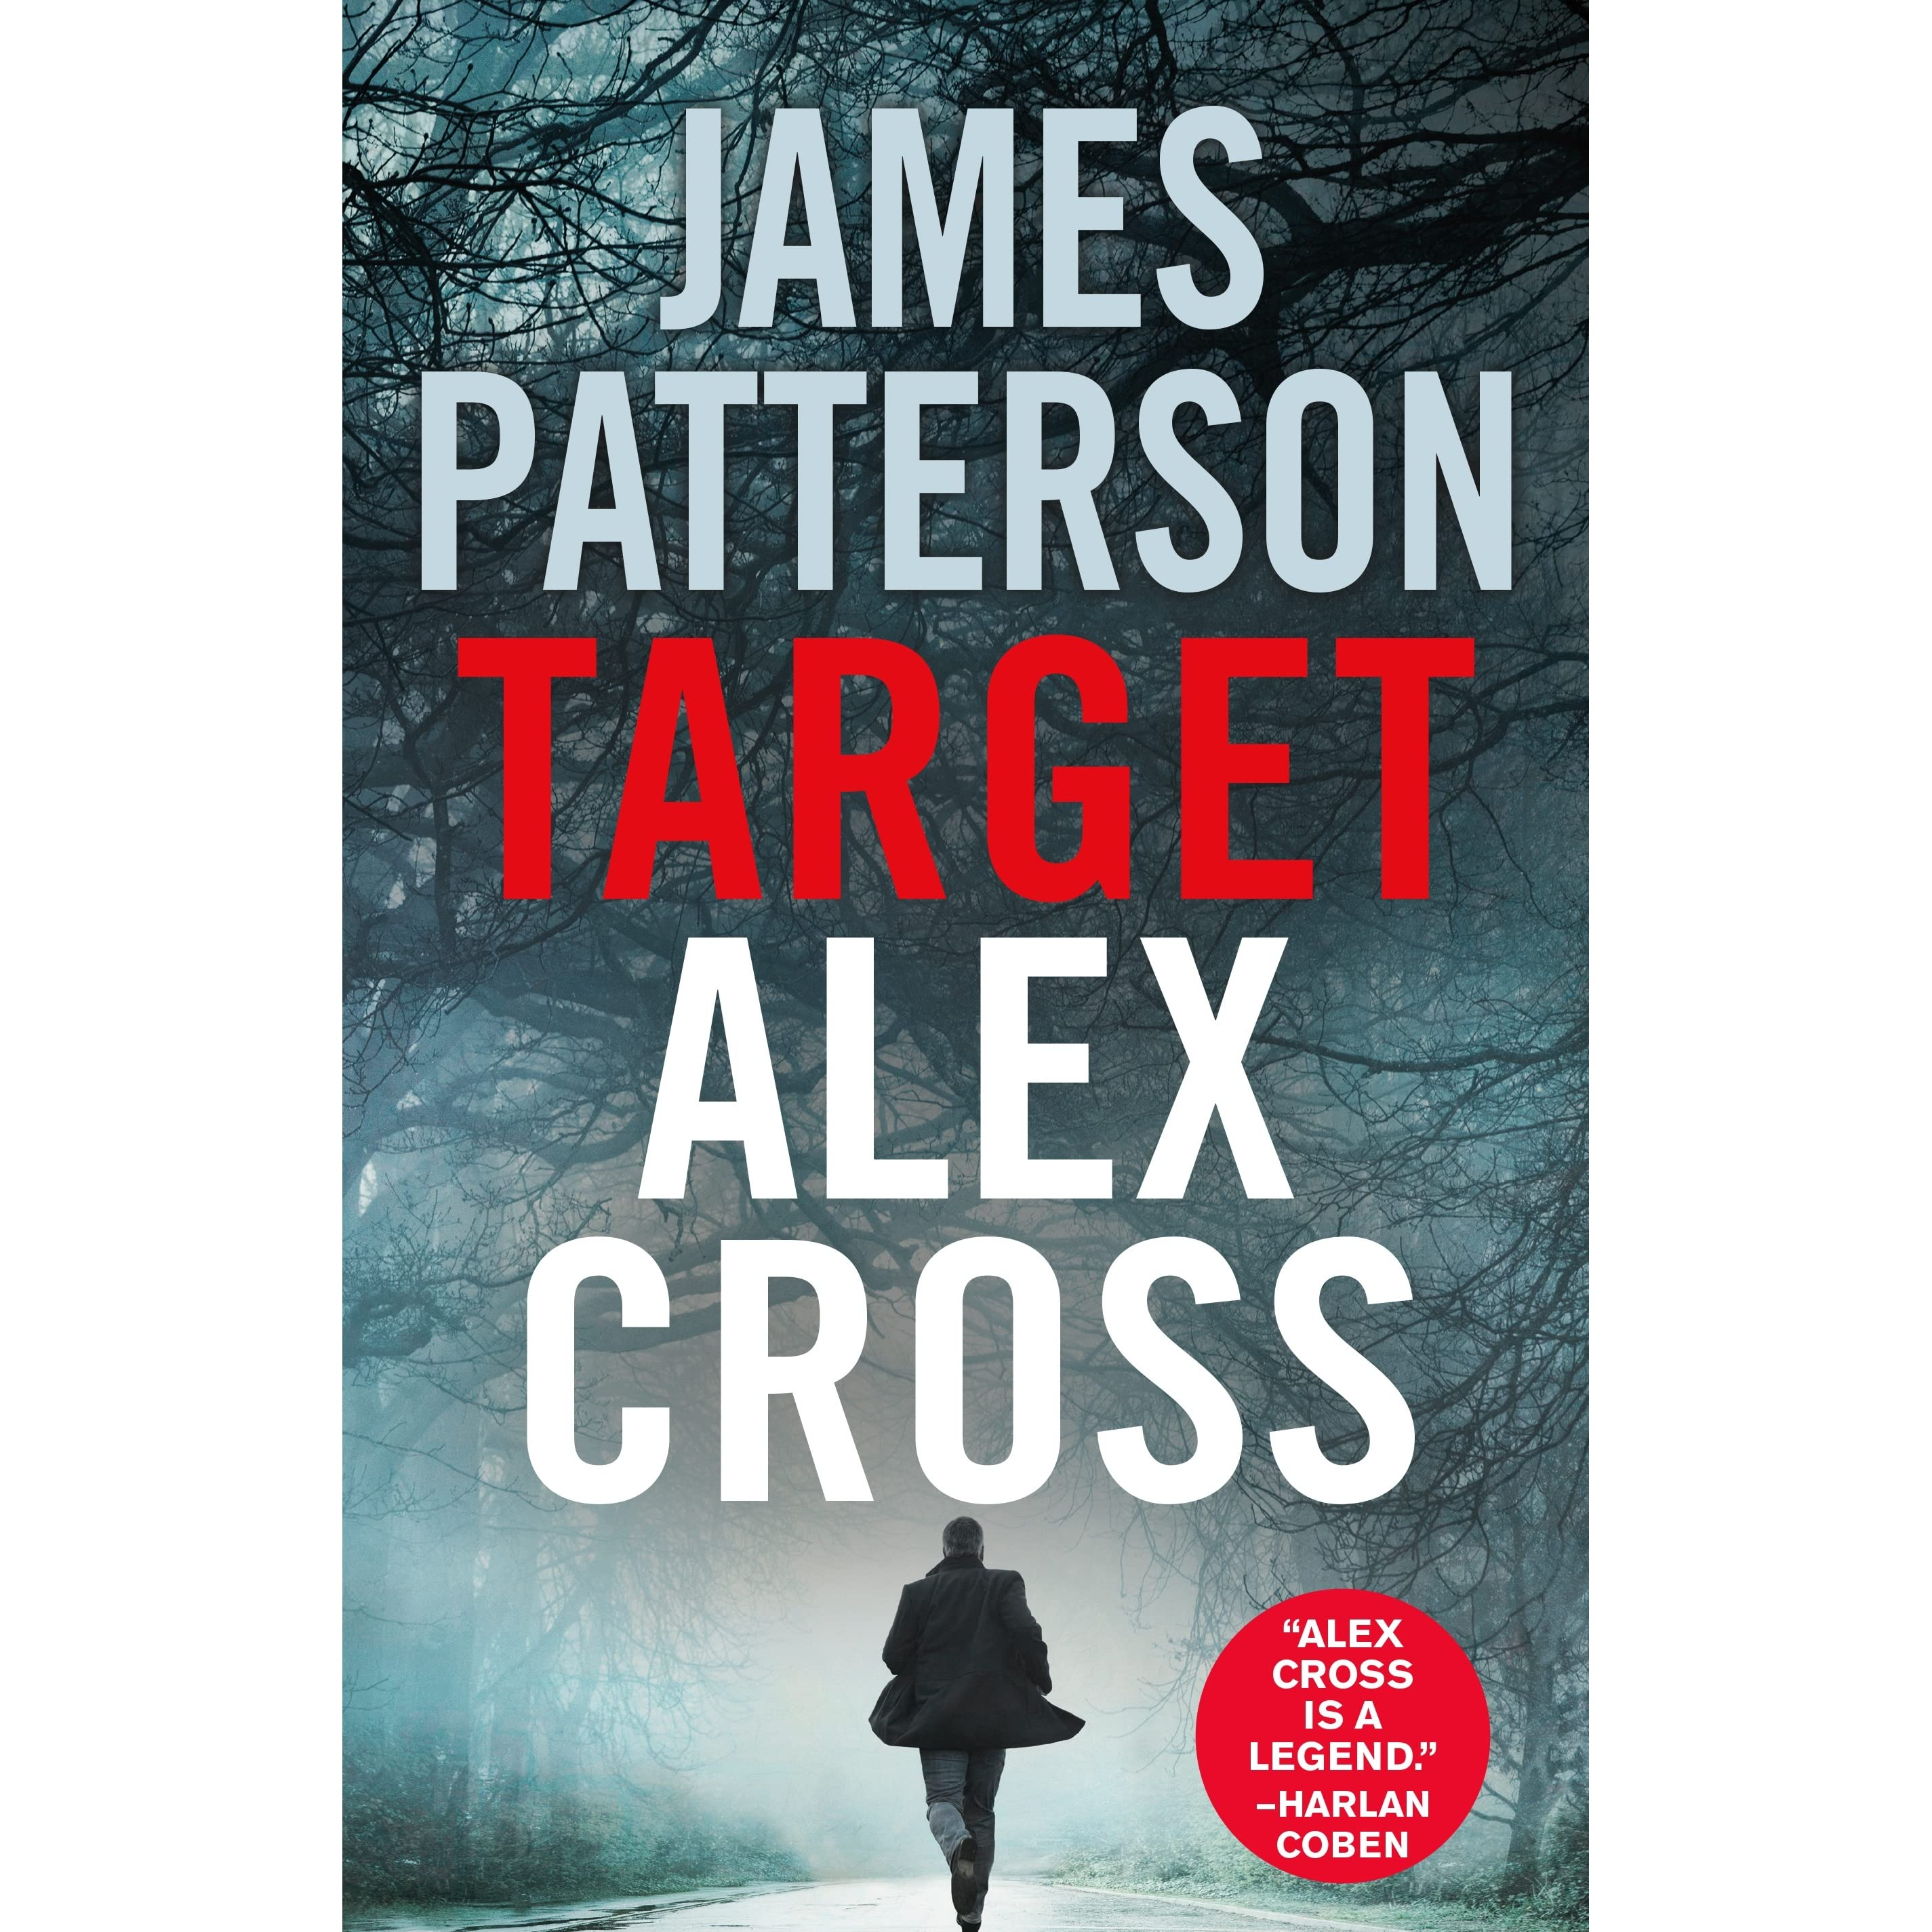 James Patterson Alert Epub